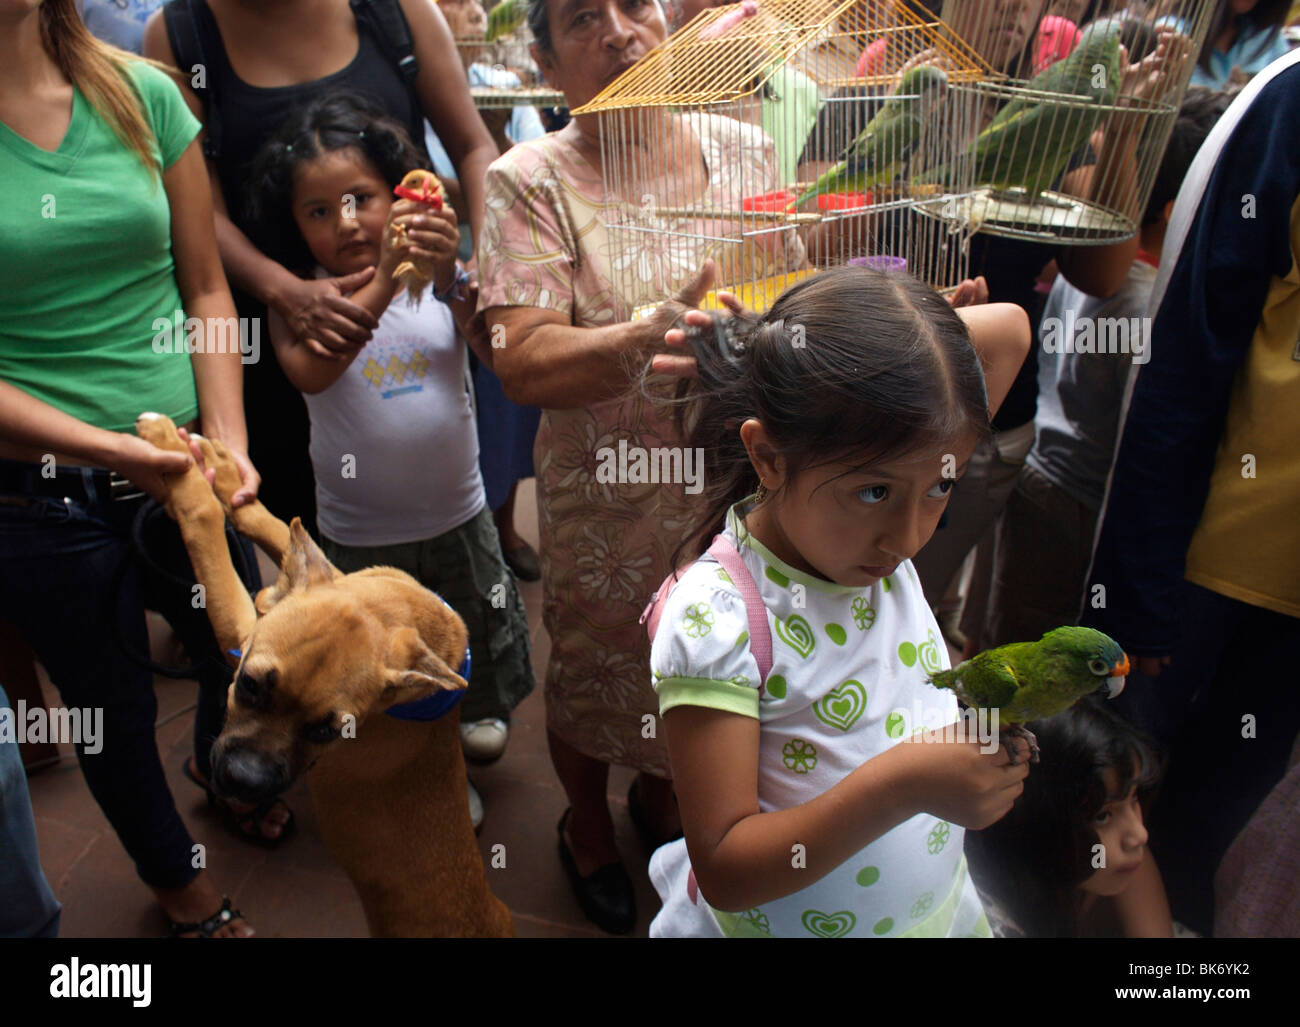 People hold their pets as they attend the Blessing of the Animals celebration in Oaxaca, Mexico - Stock Image